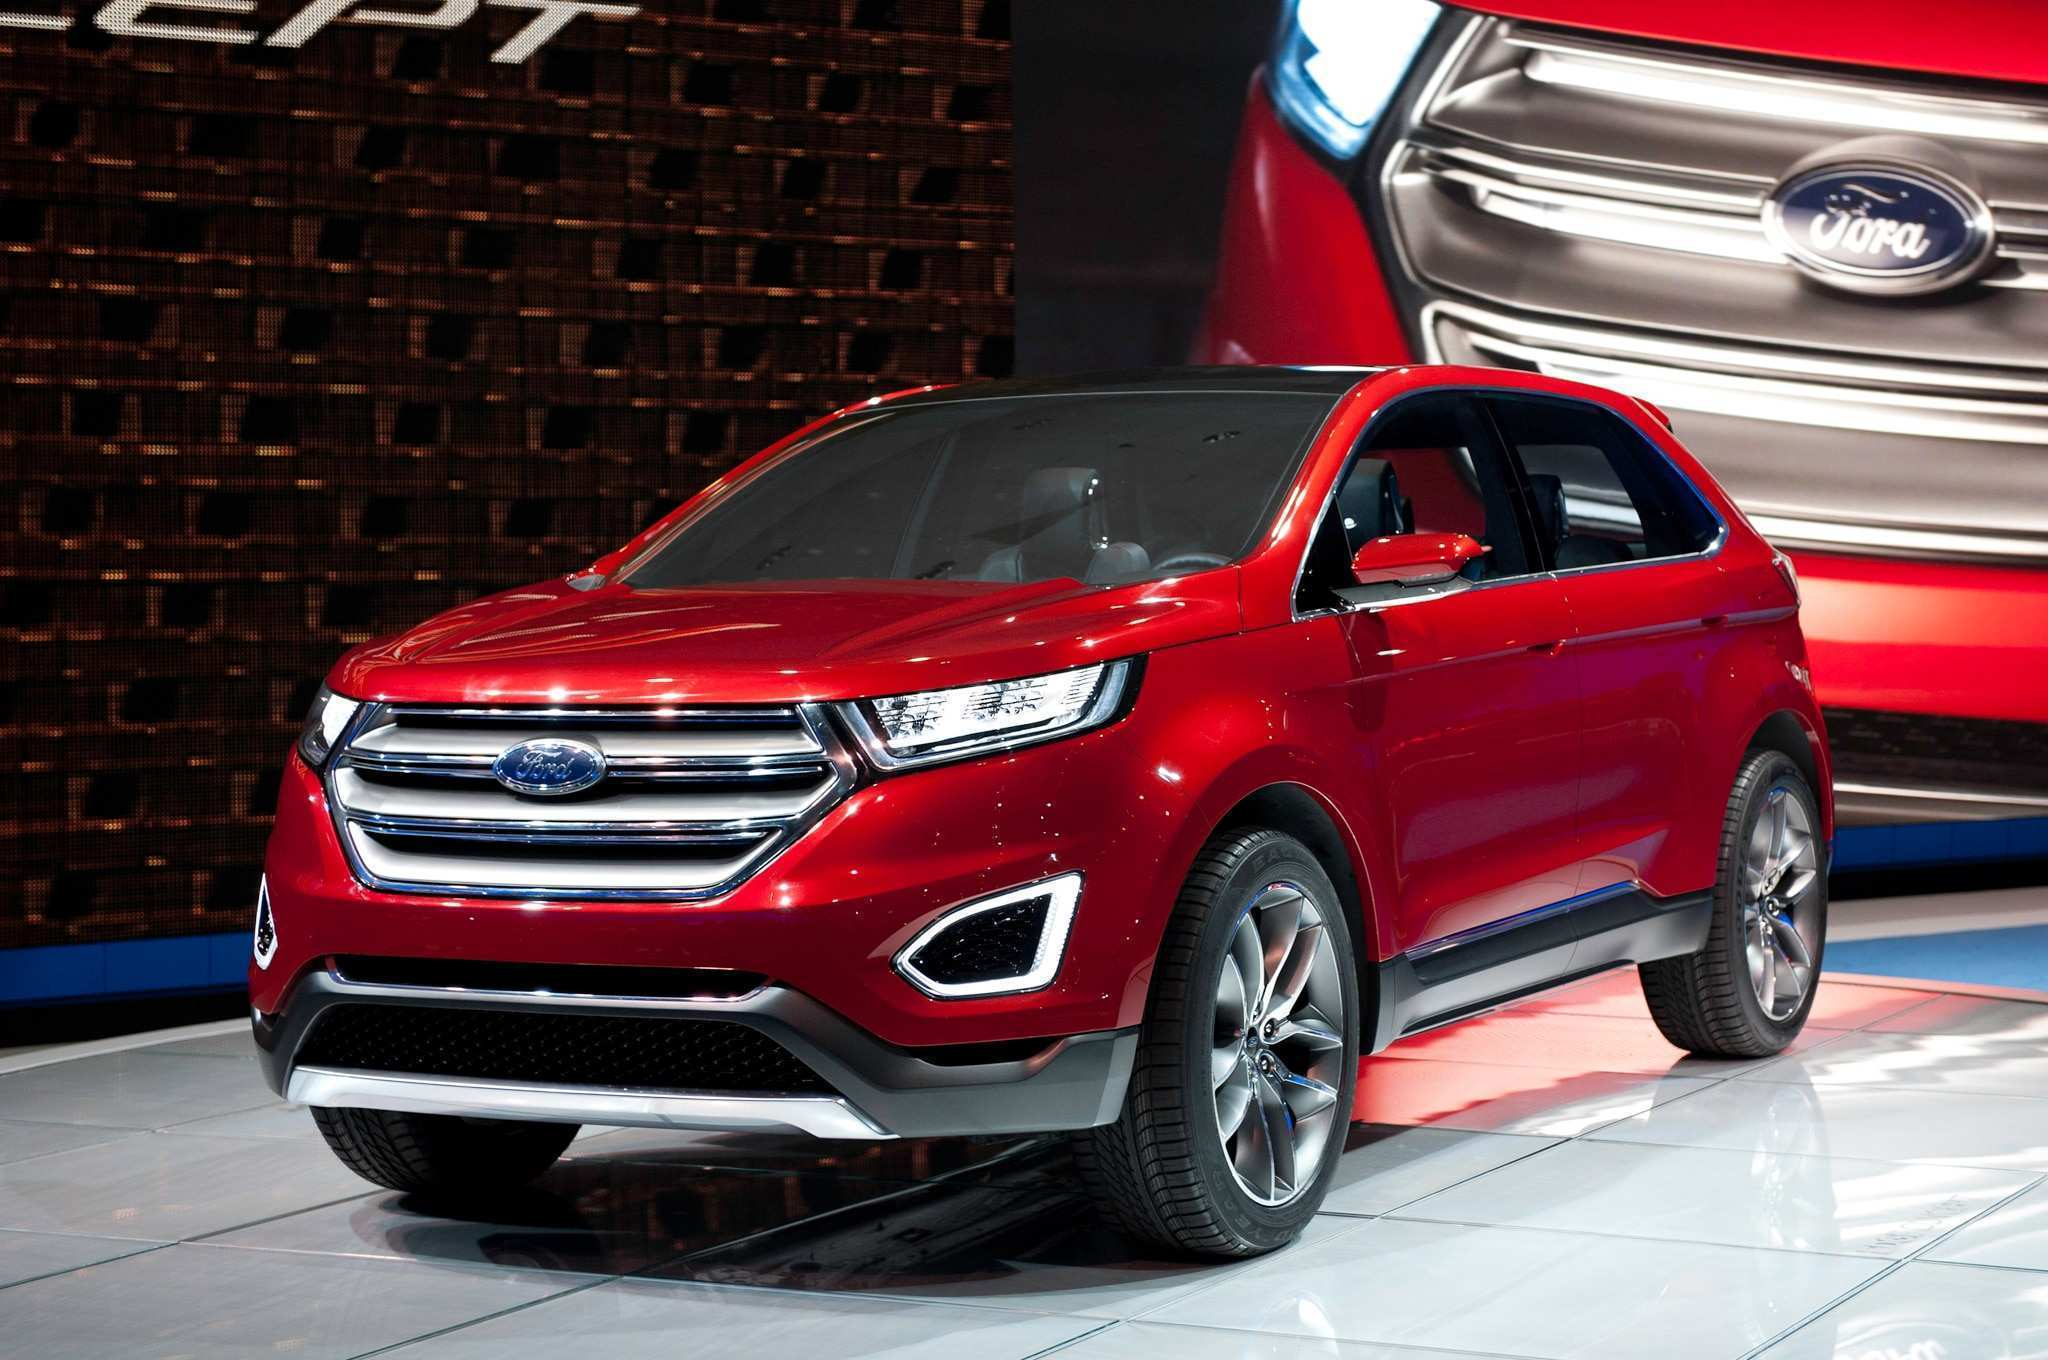 78 All New Ford Edge New Design New Review